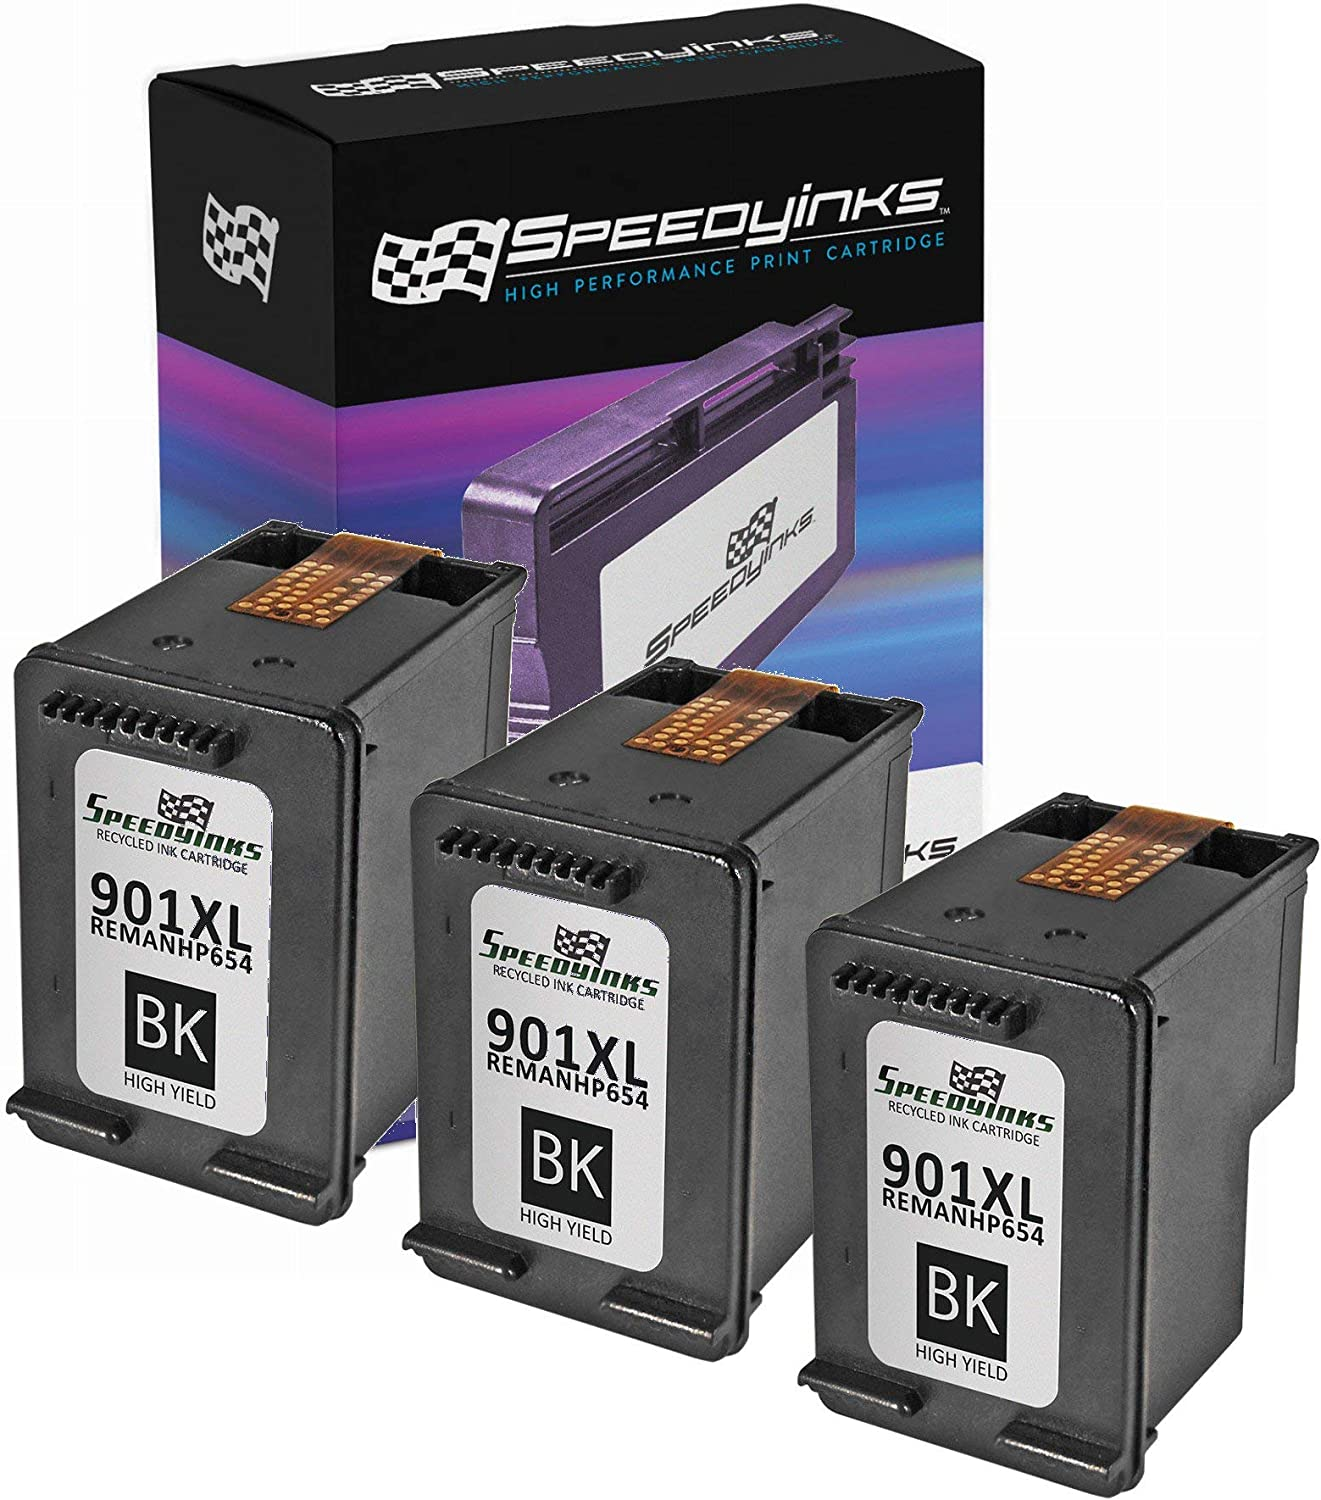 Speedy Inks Remanufactured Ink Cartridge Replacement for HP 901XL High Yield (Black, 3-Pack)